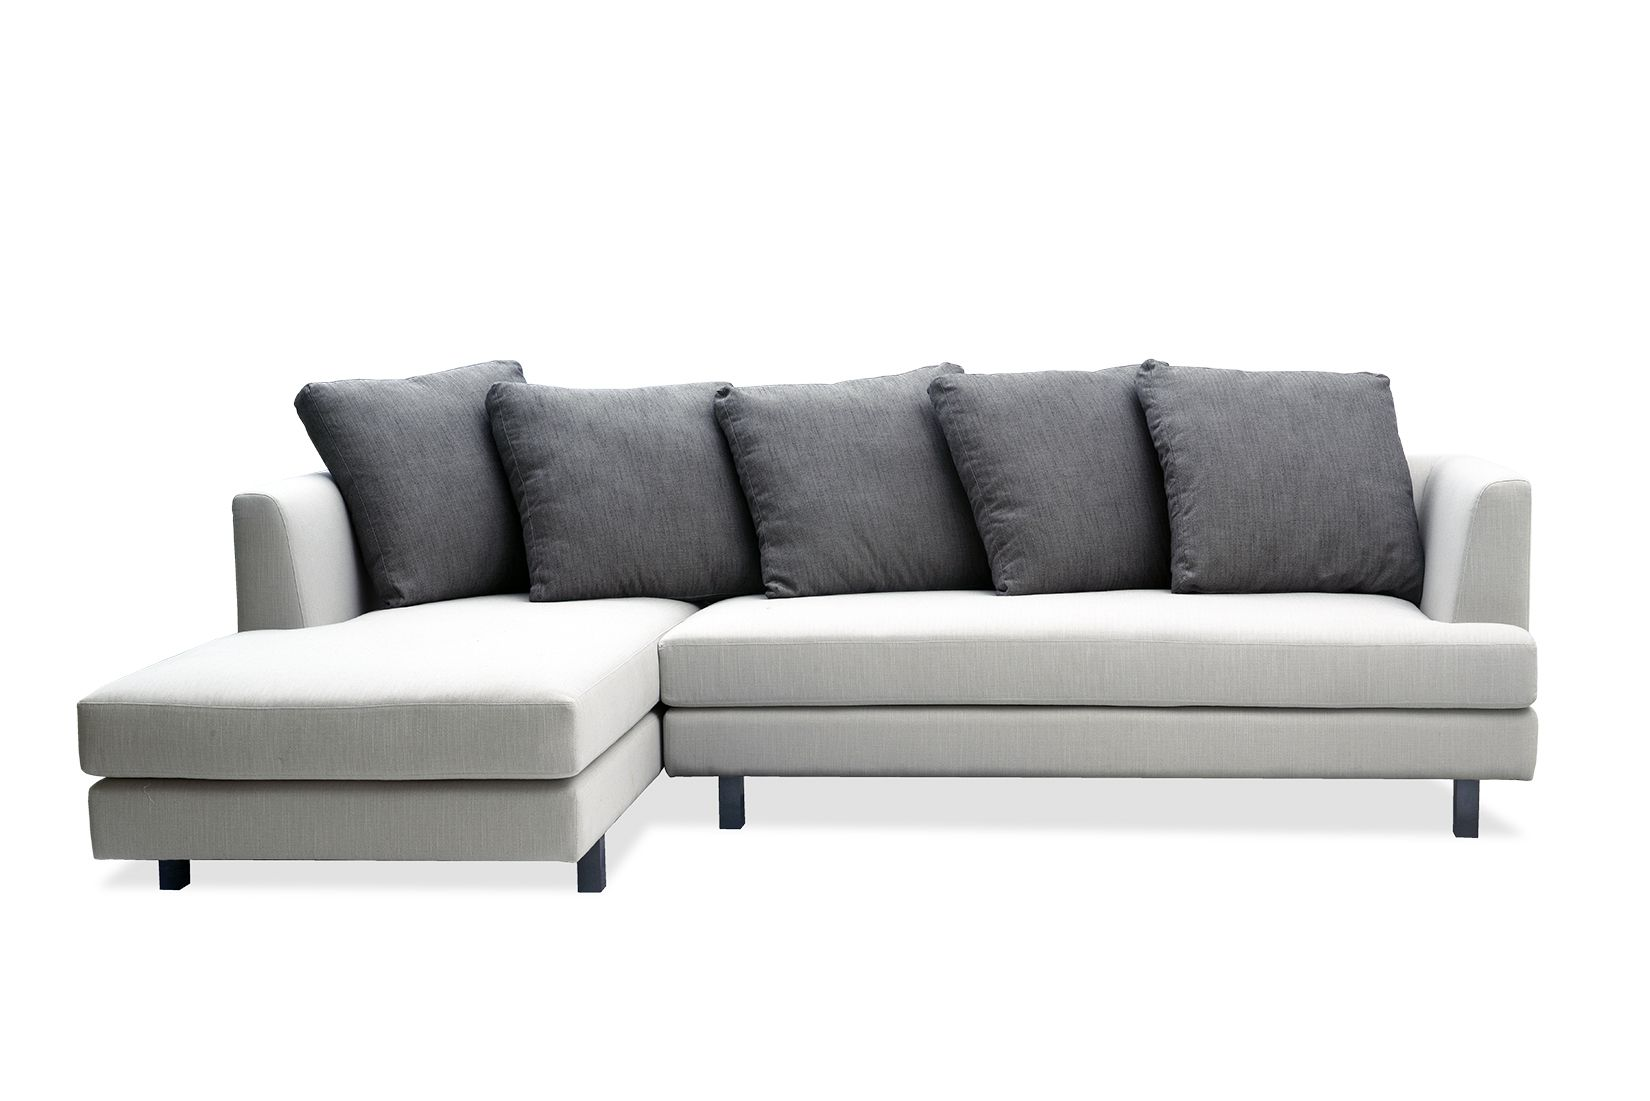 Sofa L Shape Dimensions Blafink Monki Sofa L Shaped Customisable Colors And Dimensions